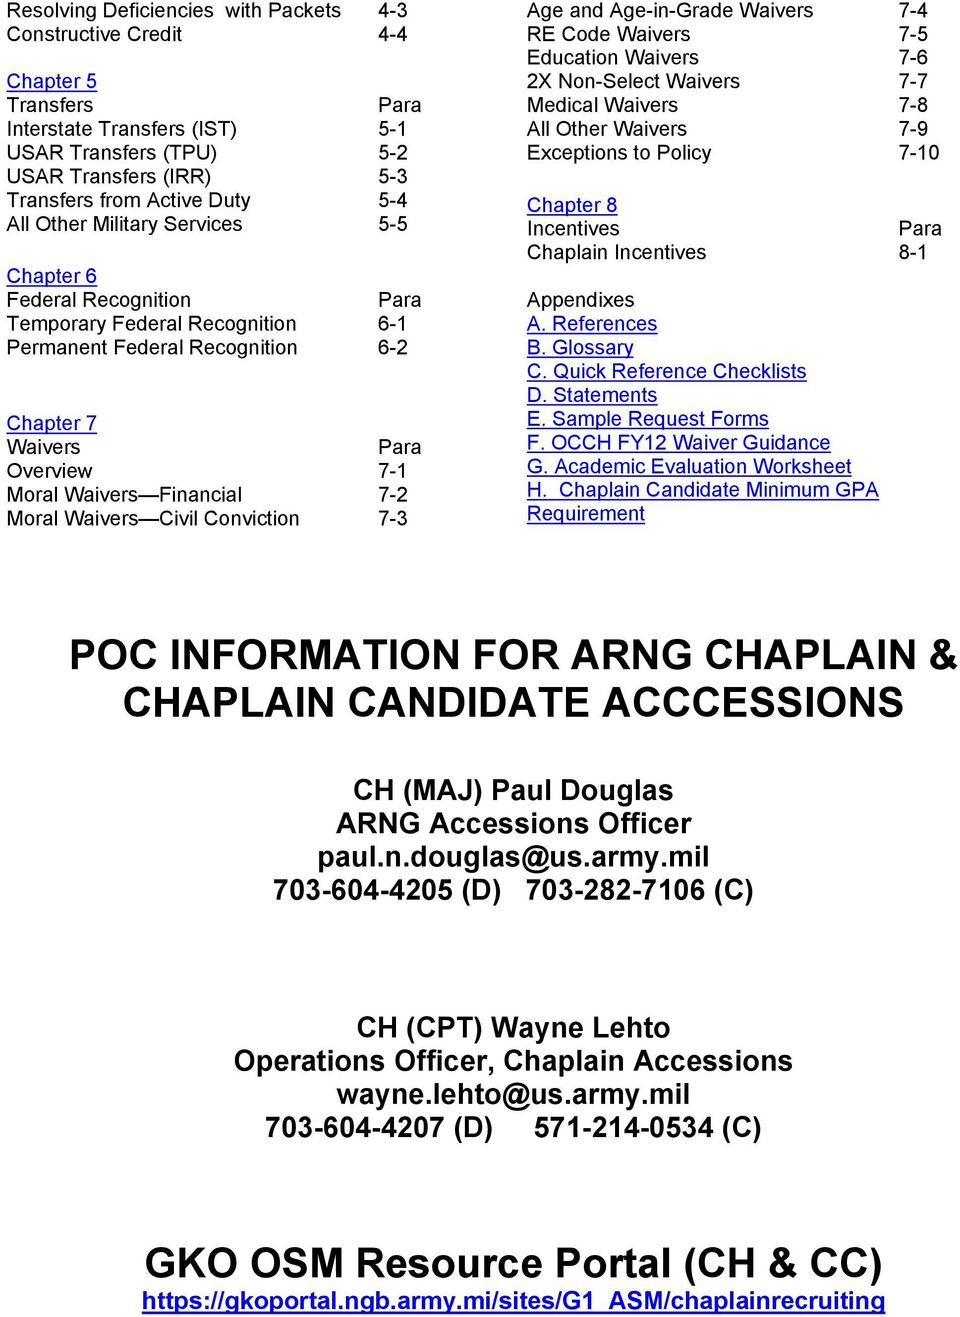 Fy12 army national guard standard operating procedures for chaplain 7 2 moral waivers civil conviction 7 3 age and age in altavistaventures Image collections